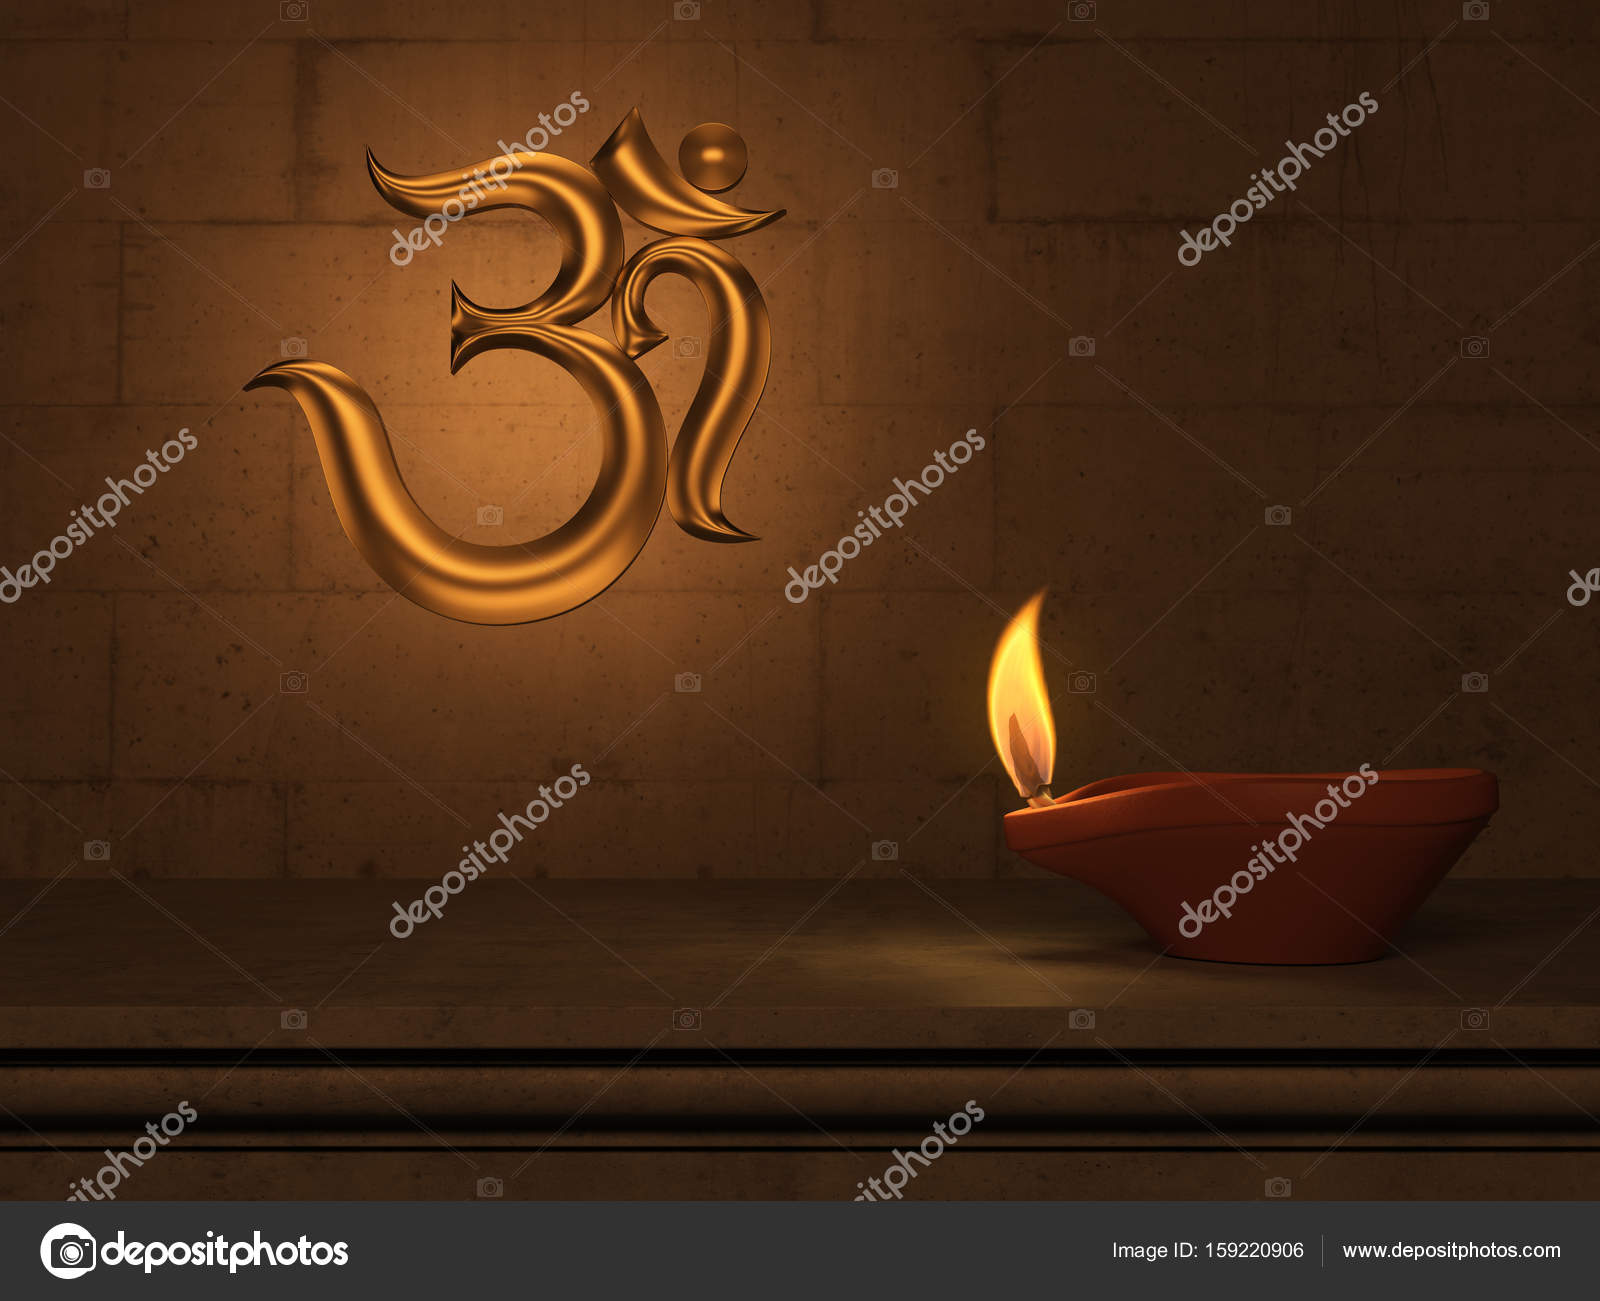 ᐈ Tmail om stock images, Royalty Free tamil om pictures   download on  Depositphotos®